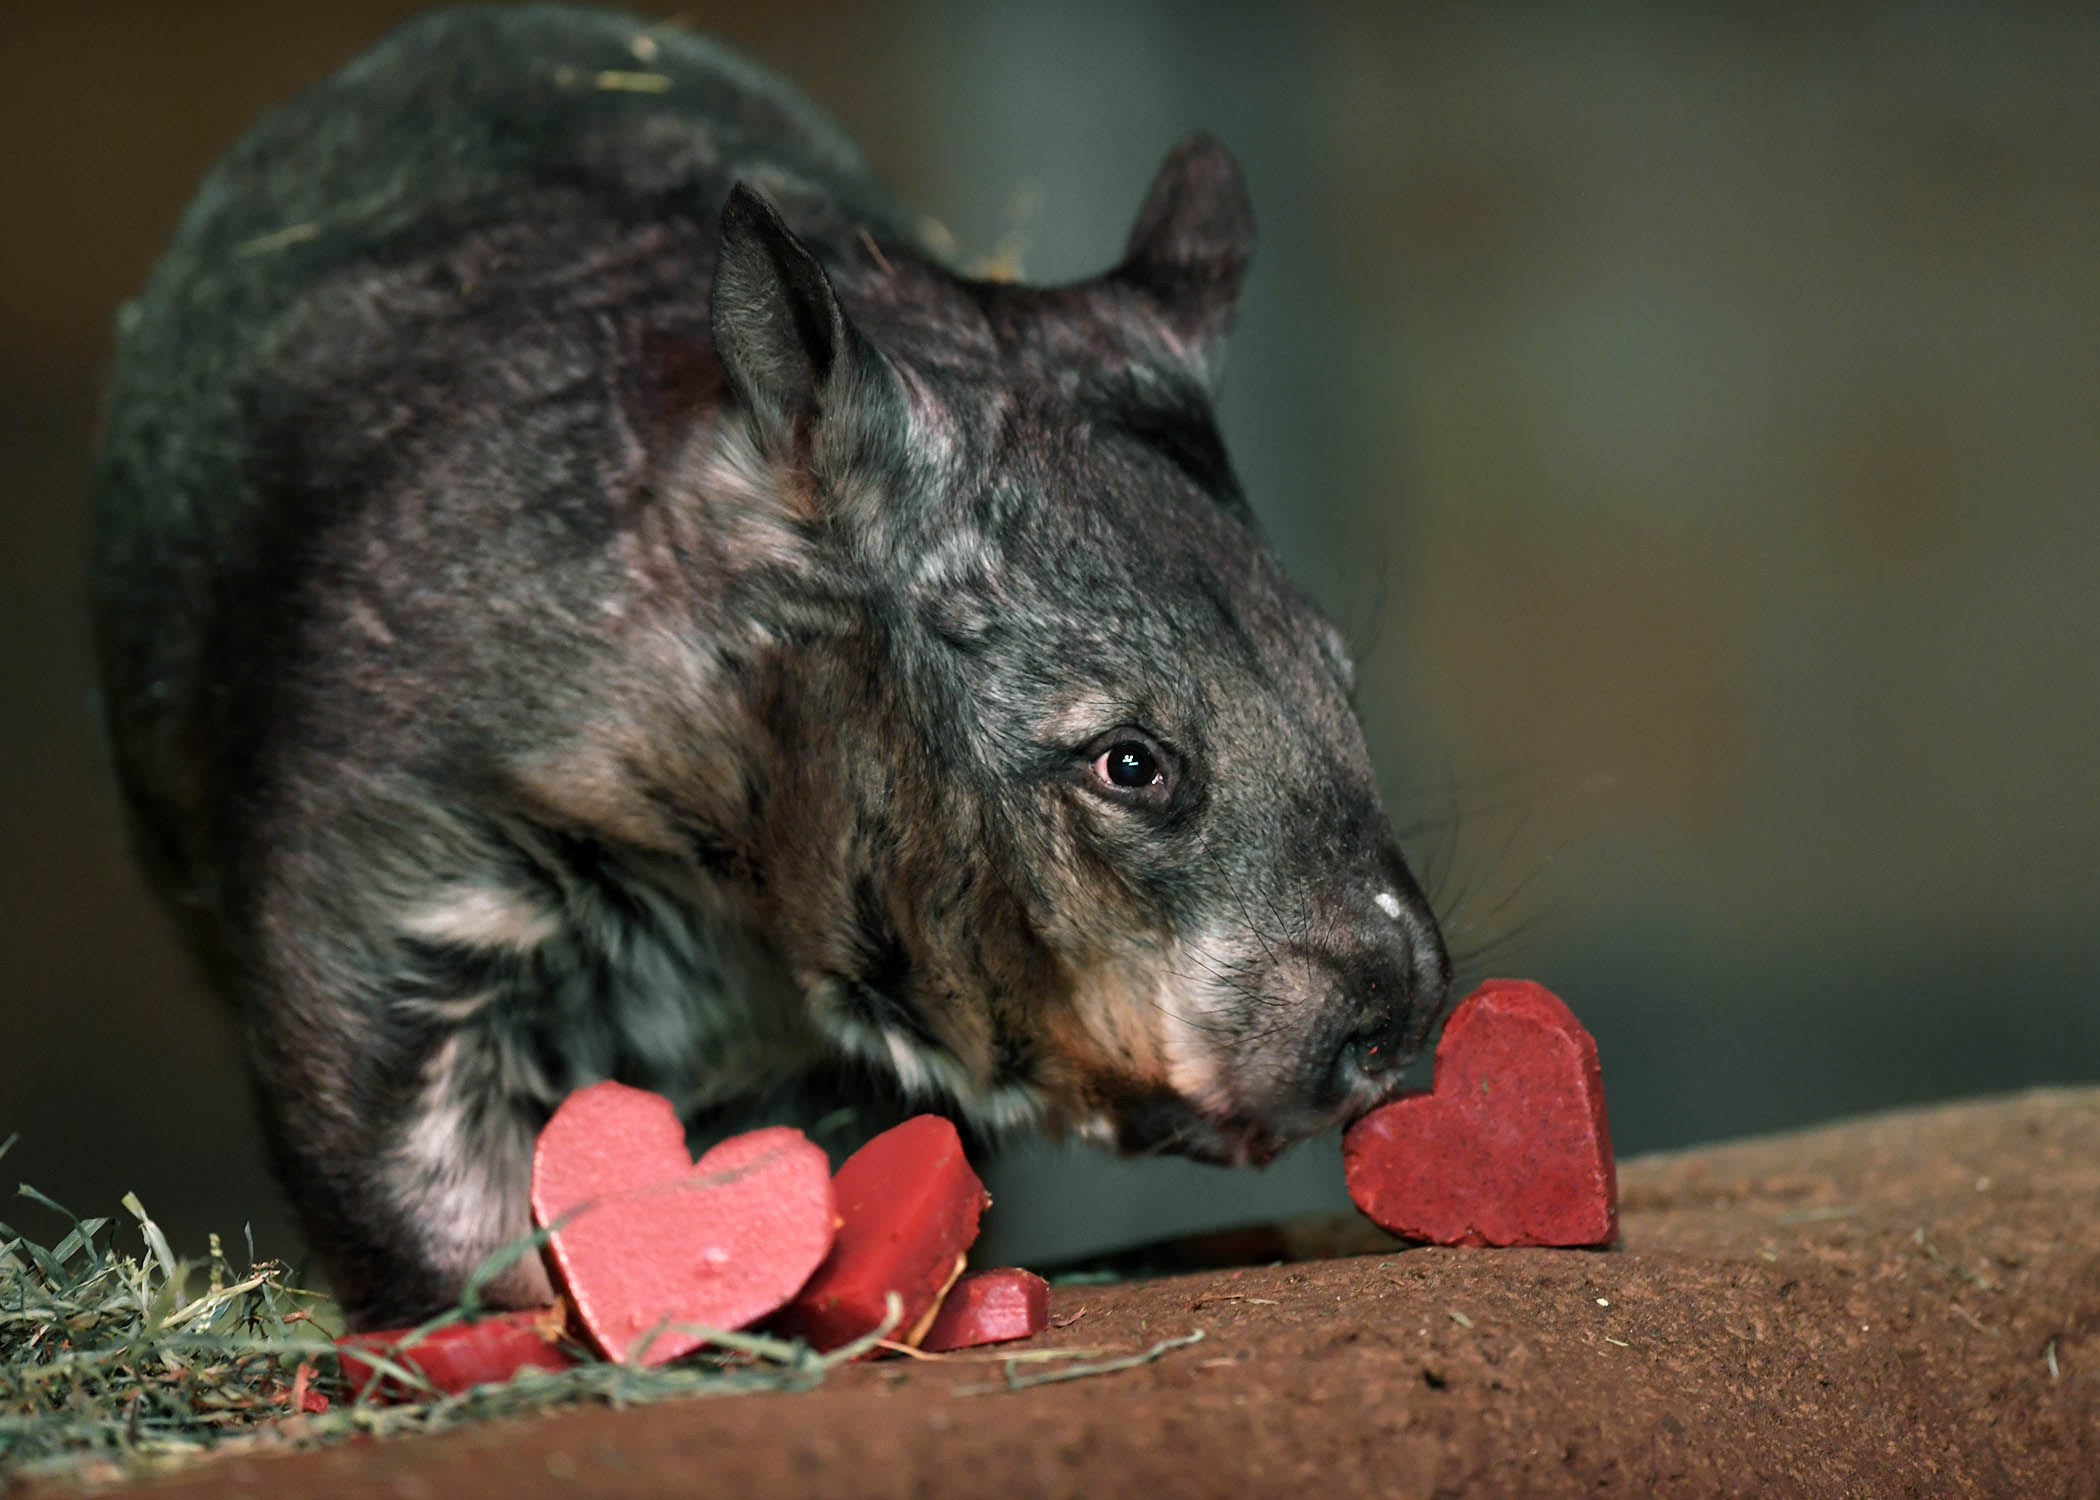 Kambora, a southern hairy-nosed wombat. (Jim Schulz / Chicago Zoological Society)